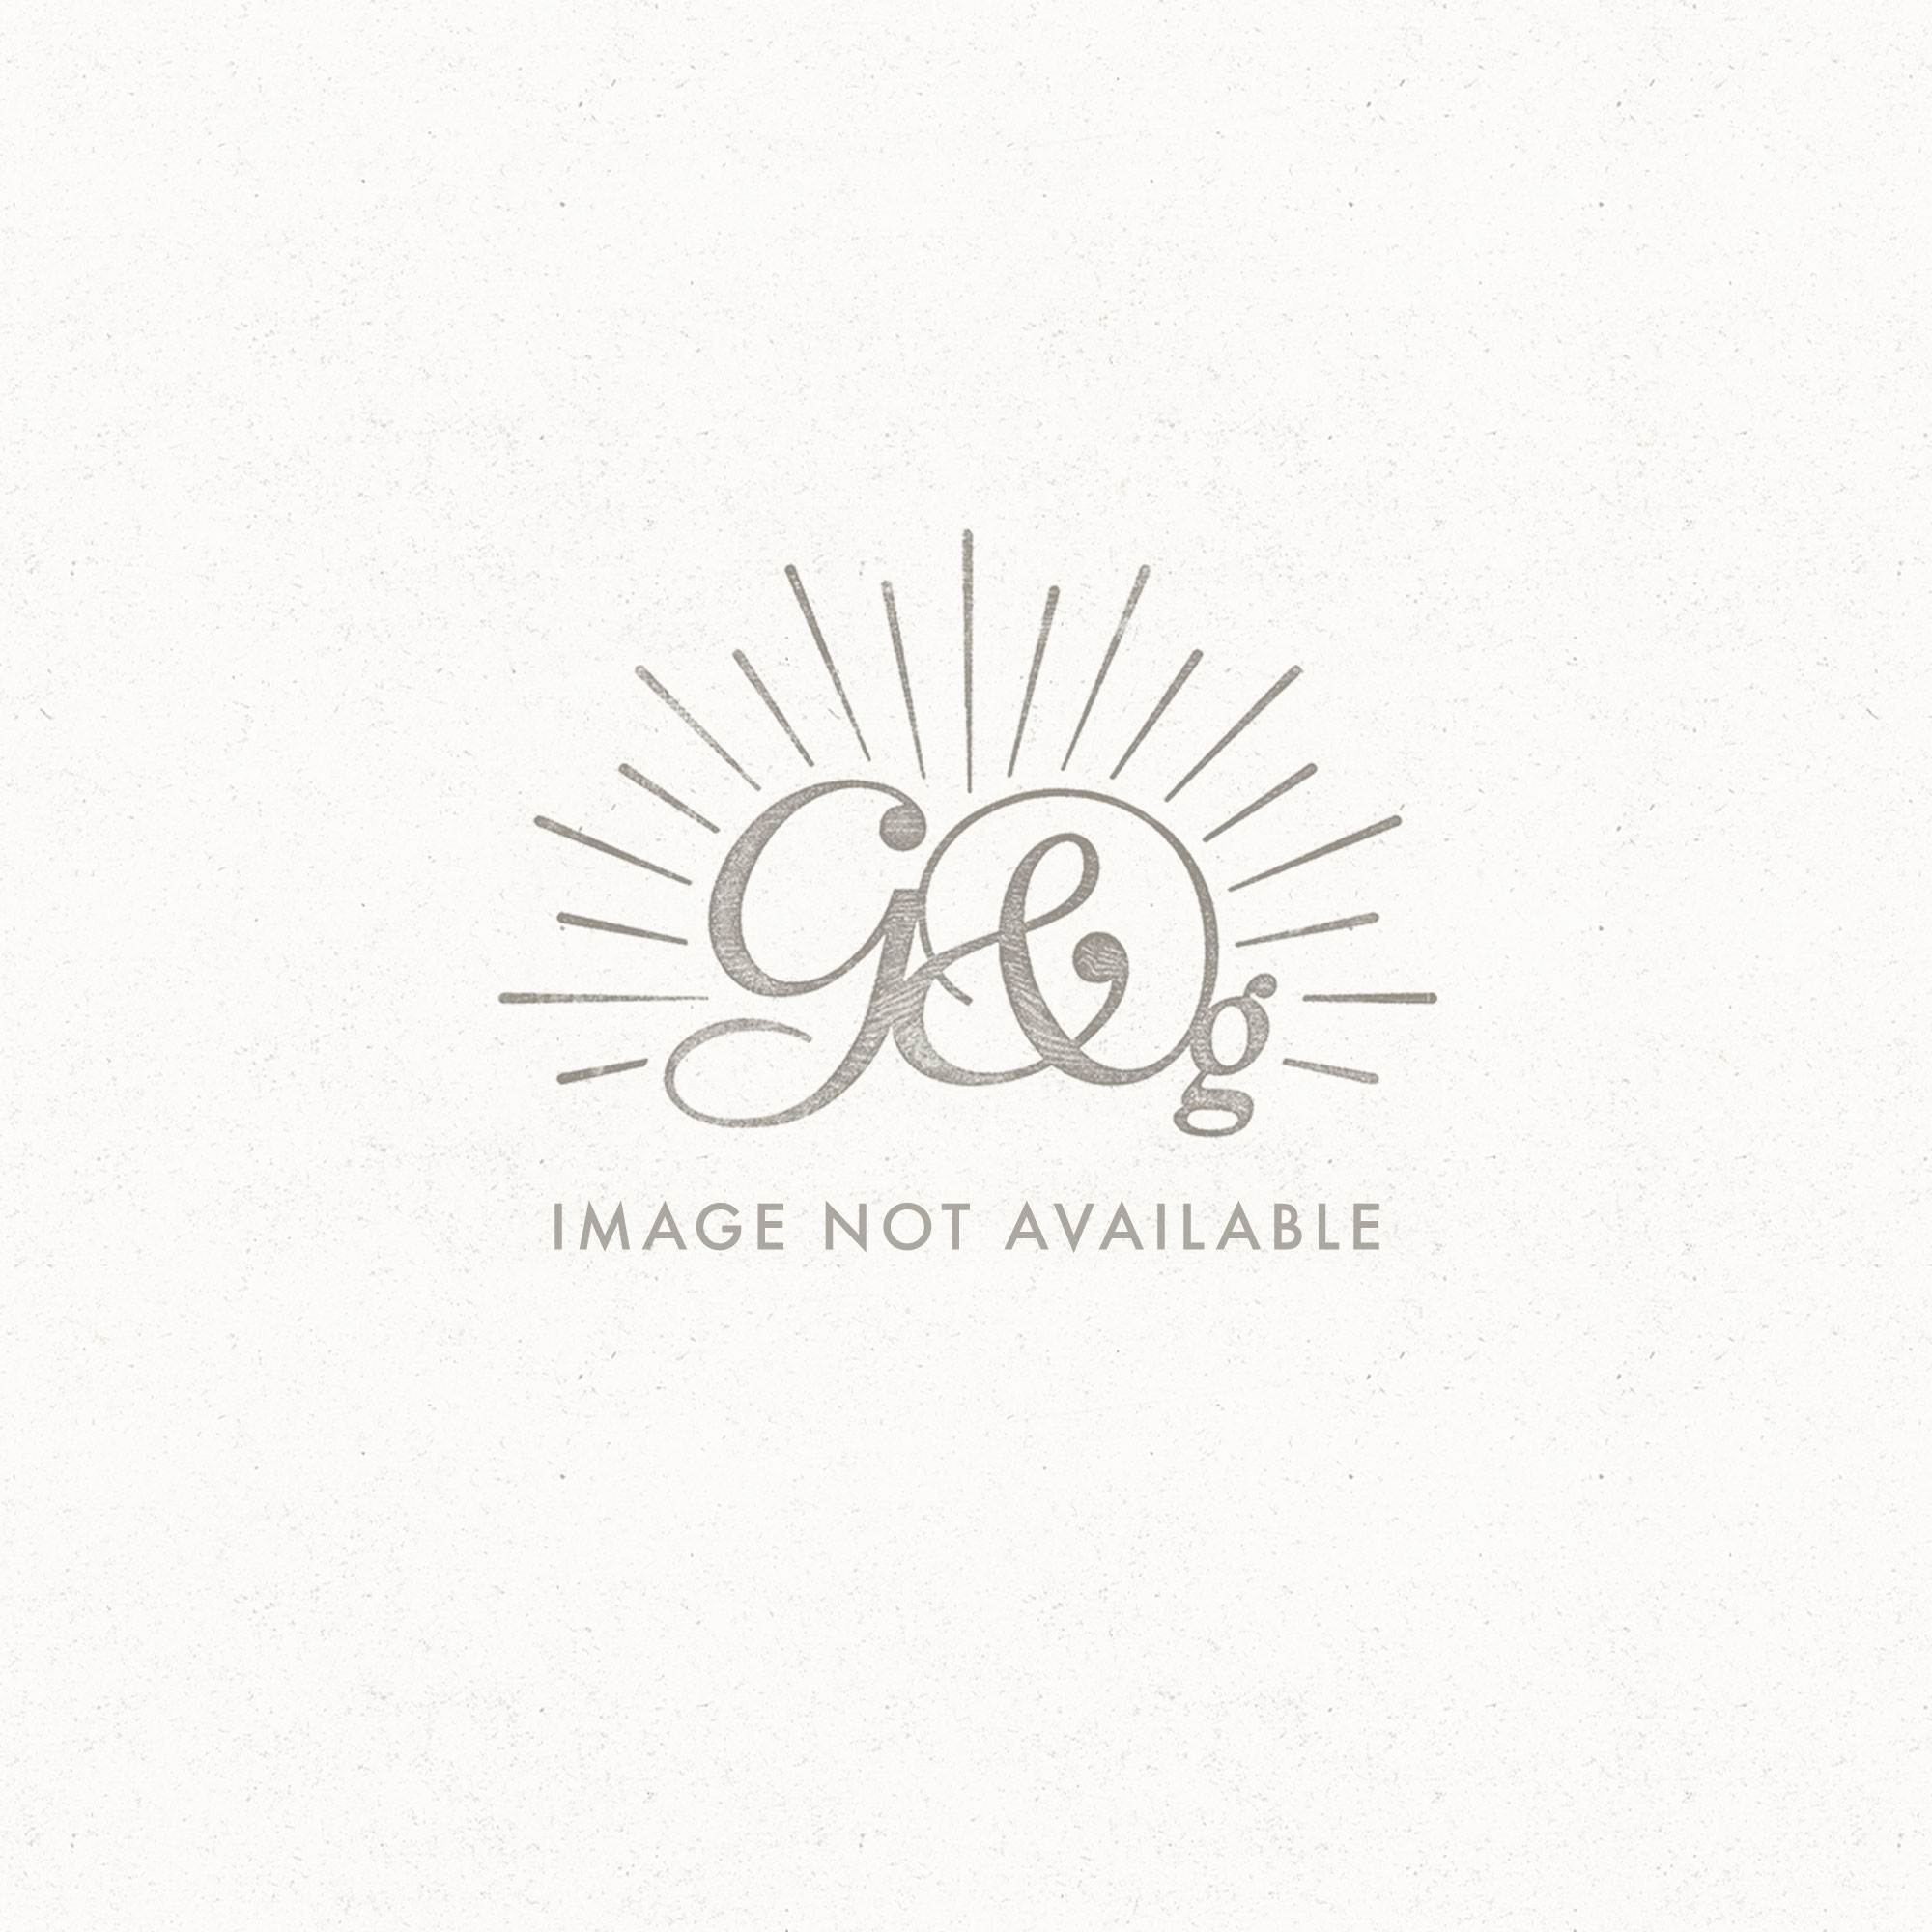 Beetle Wall Art